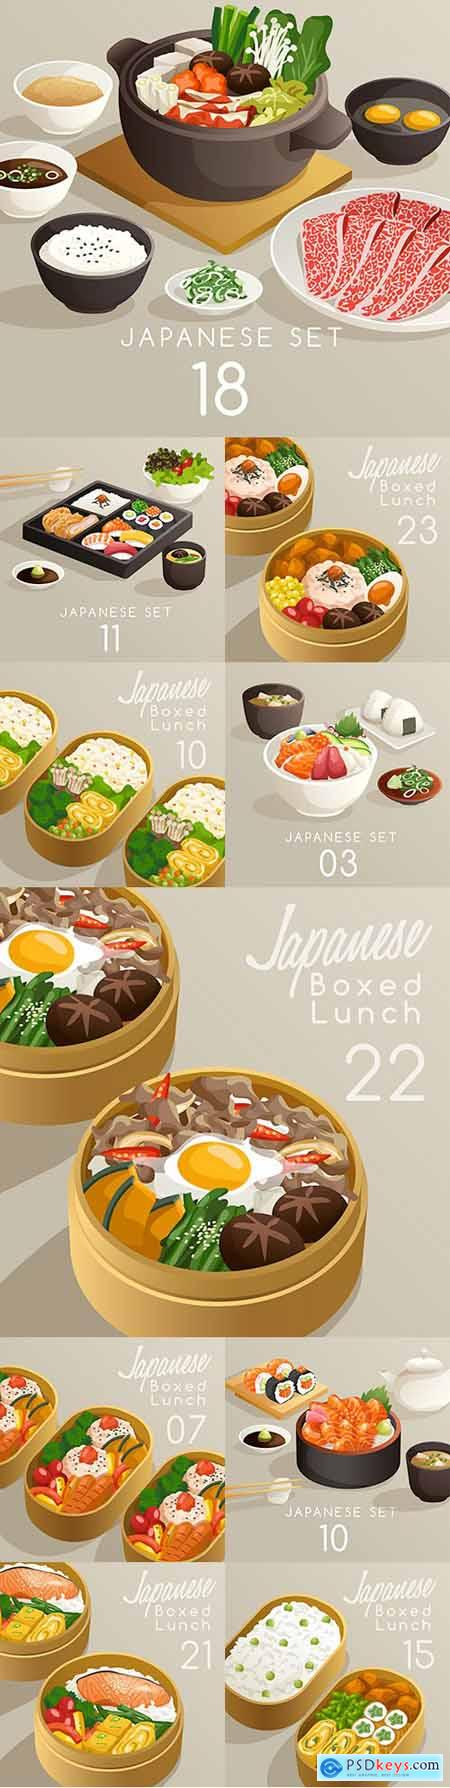 Japanese cuisine and foods in packaging set illustration